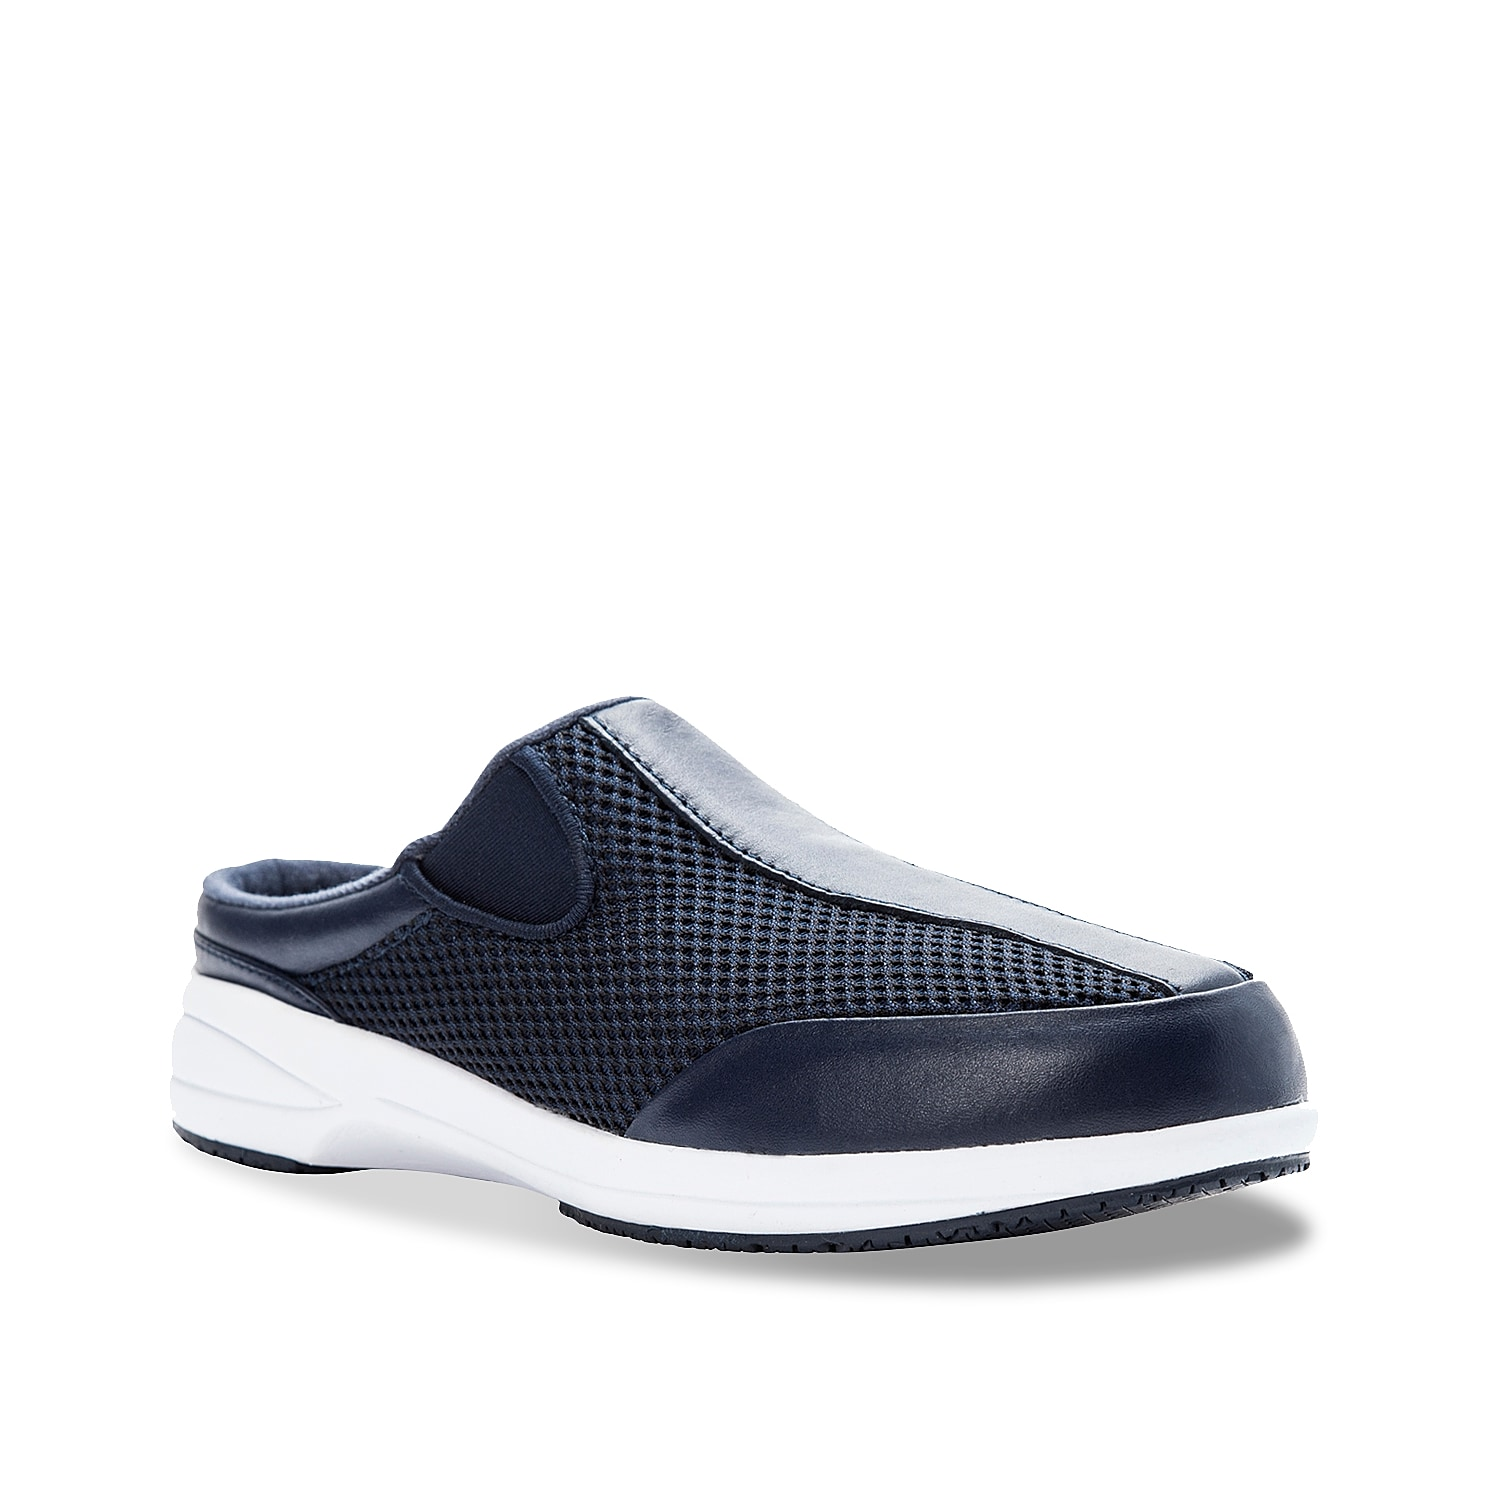 You\\\'ll love the lightweight Washable Walker slip-on sneaker from Propet. This work shoe features a removable cushioned insole for all-day comfort while on the job!